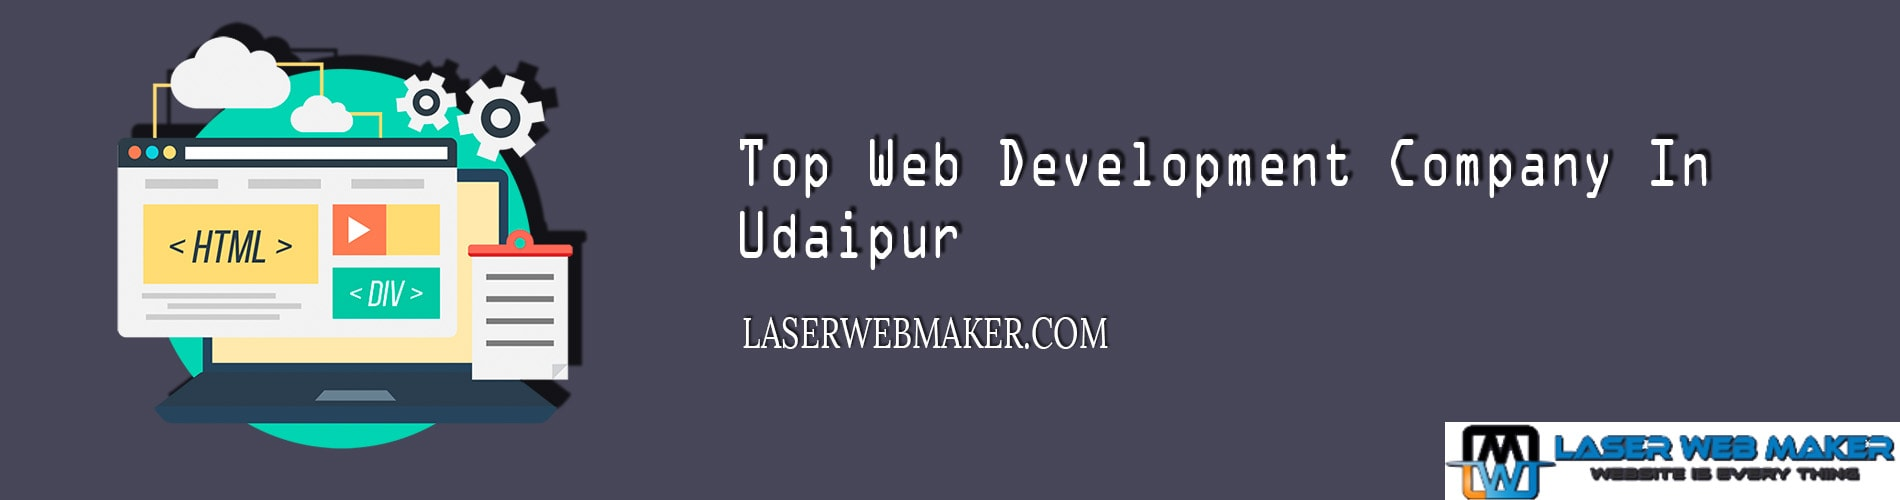 Top Web Development Company In Udaipur